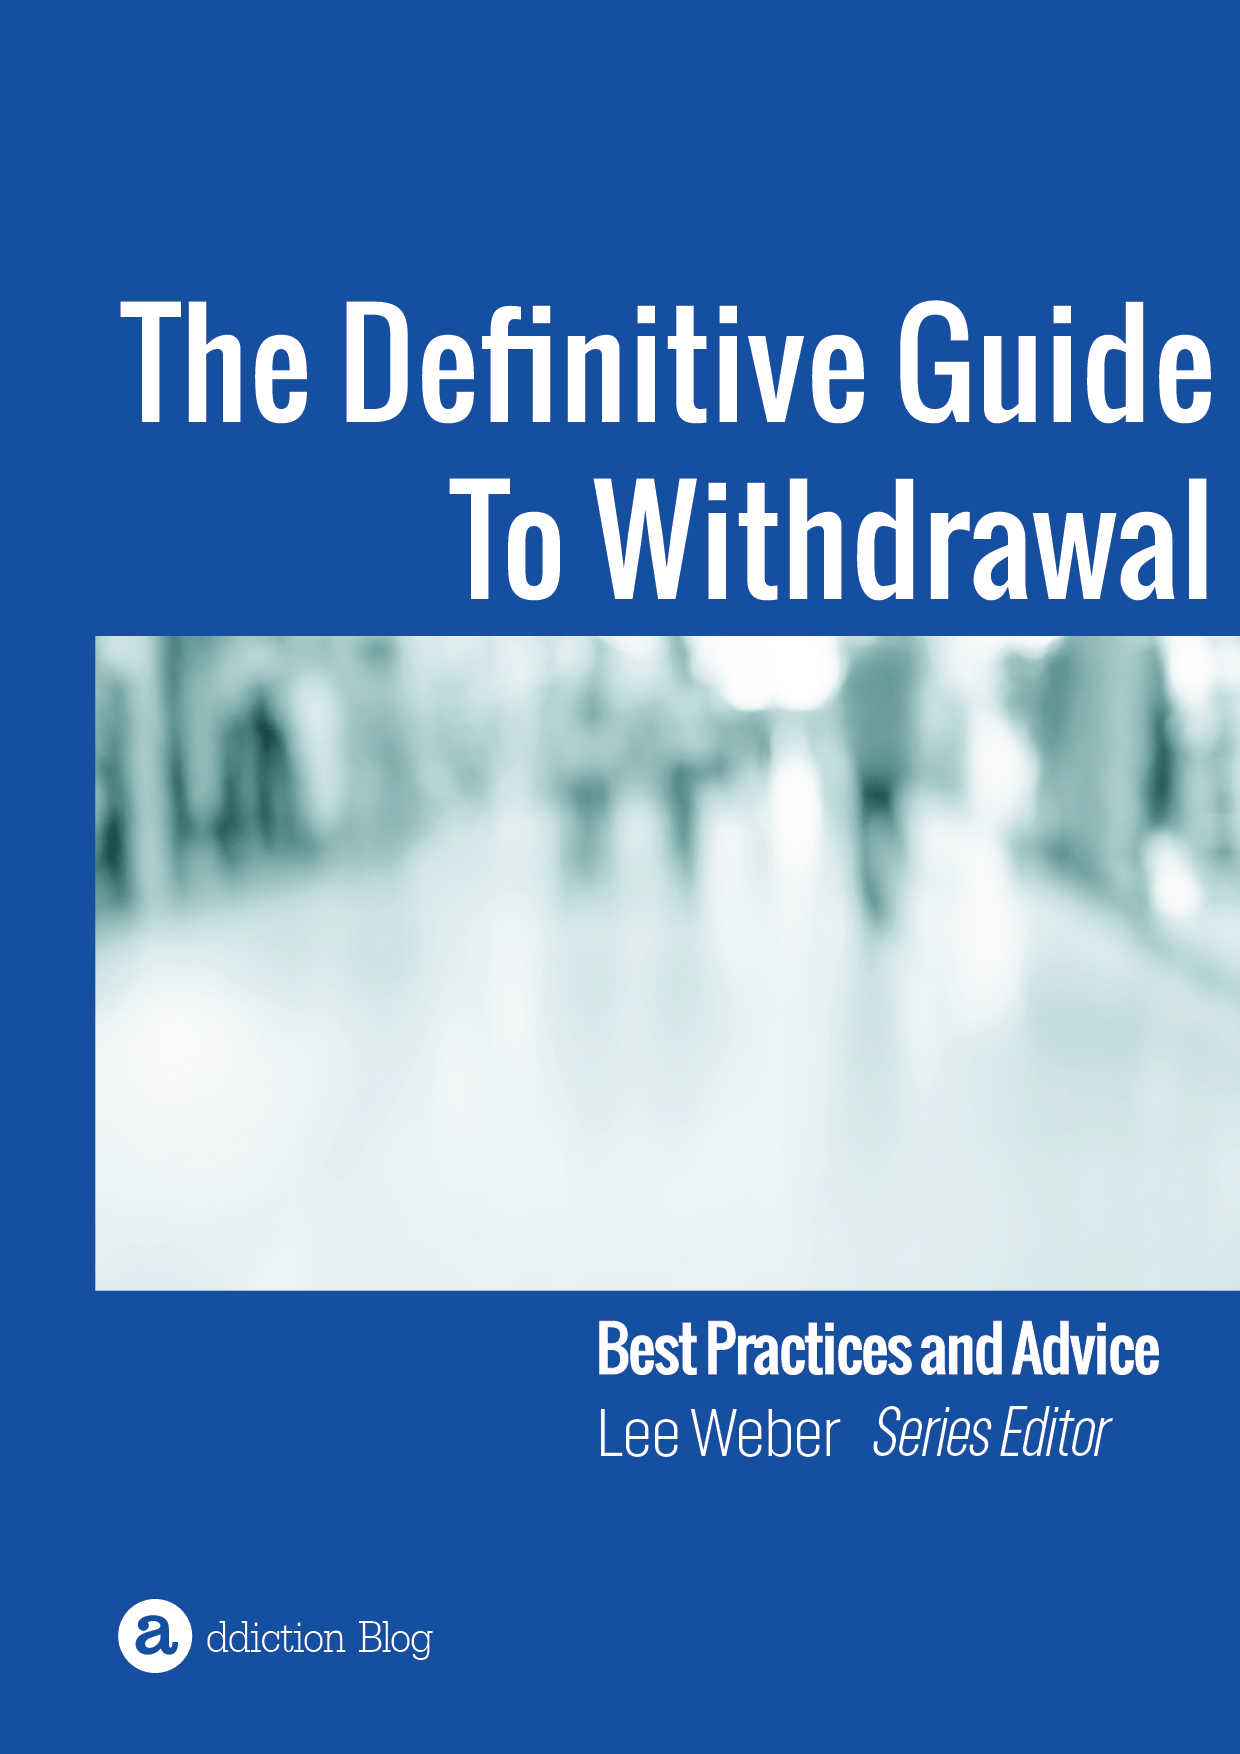 The Definitive Guide To Drug Withdrawal